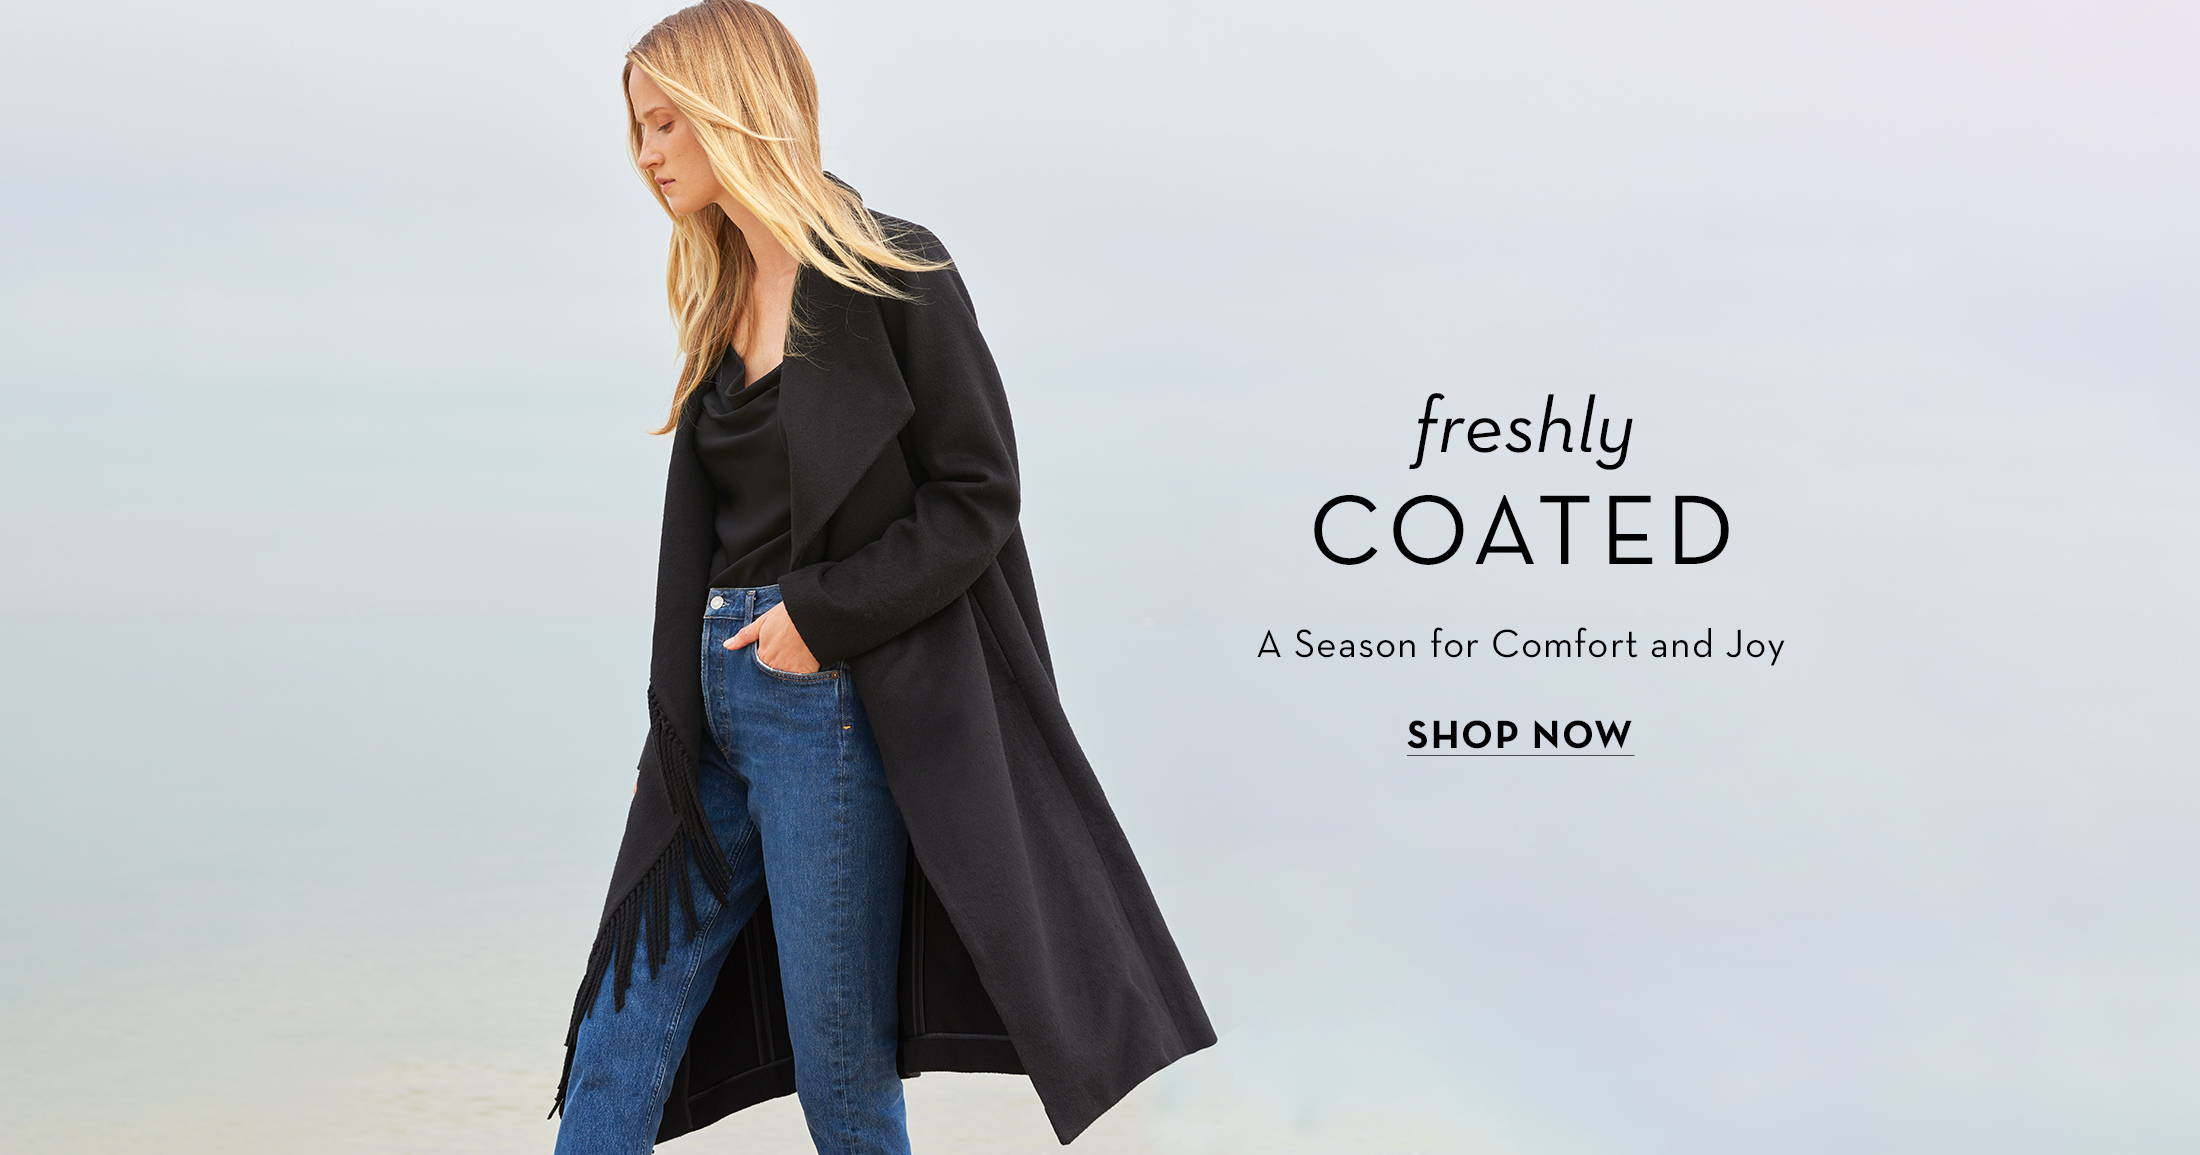 Freshly coated a season for comfort and joy, shop now